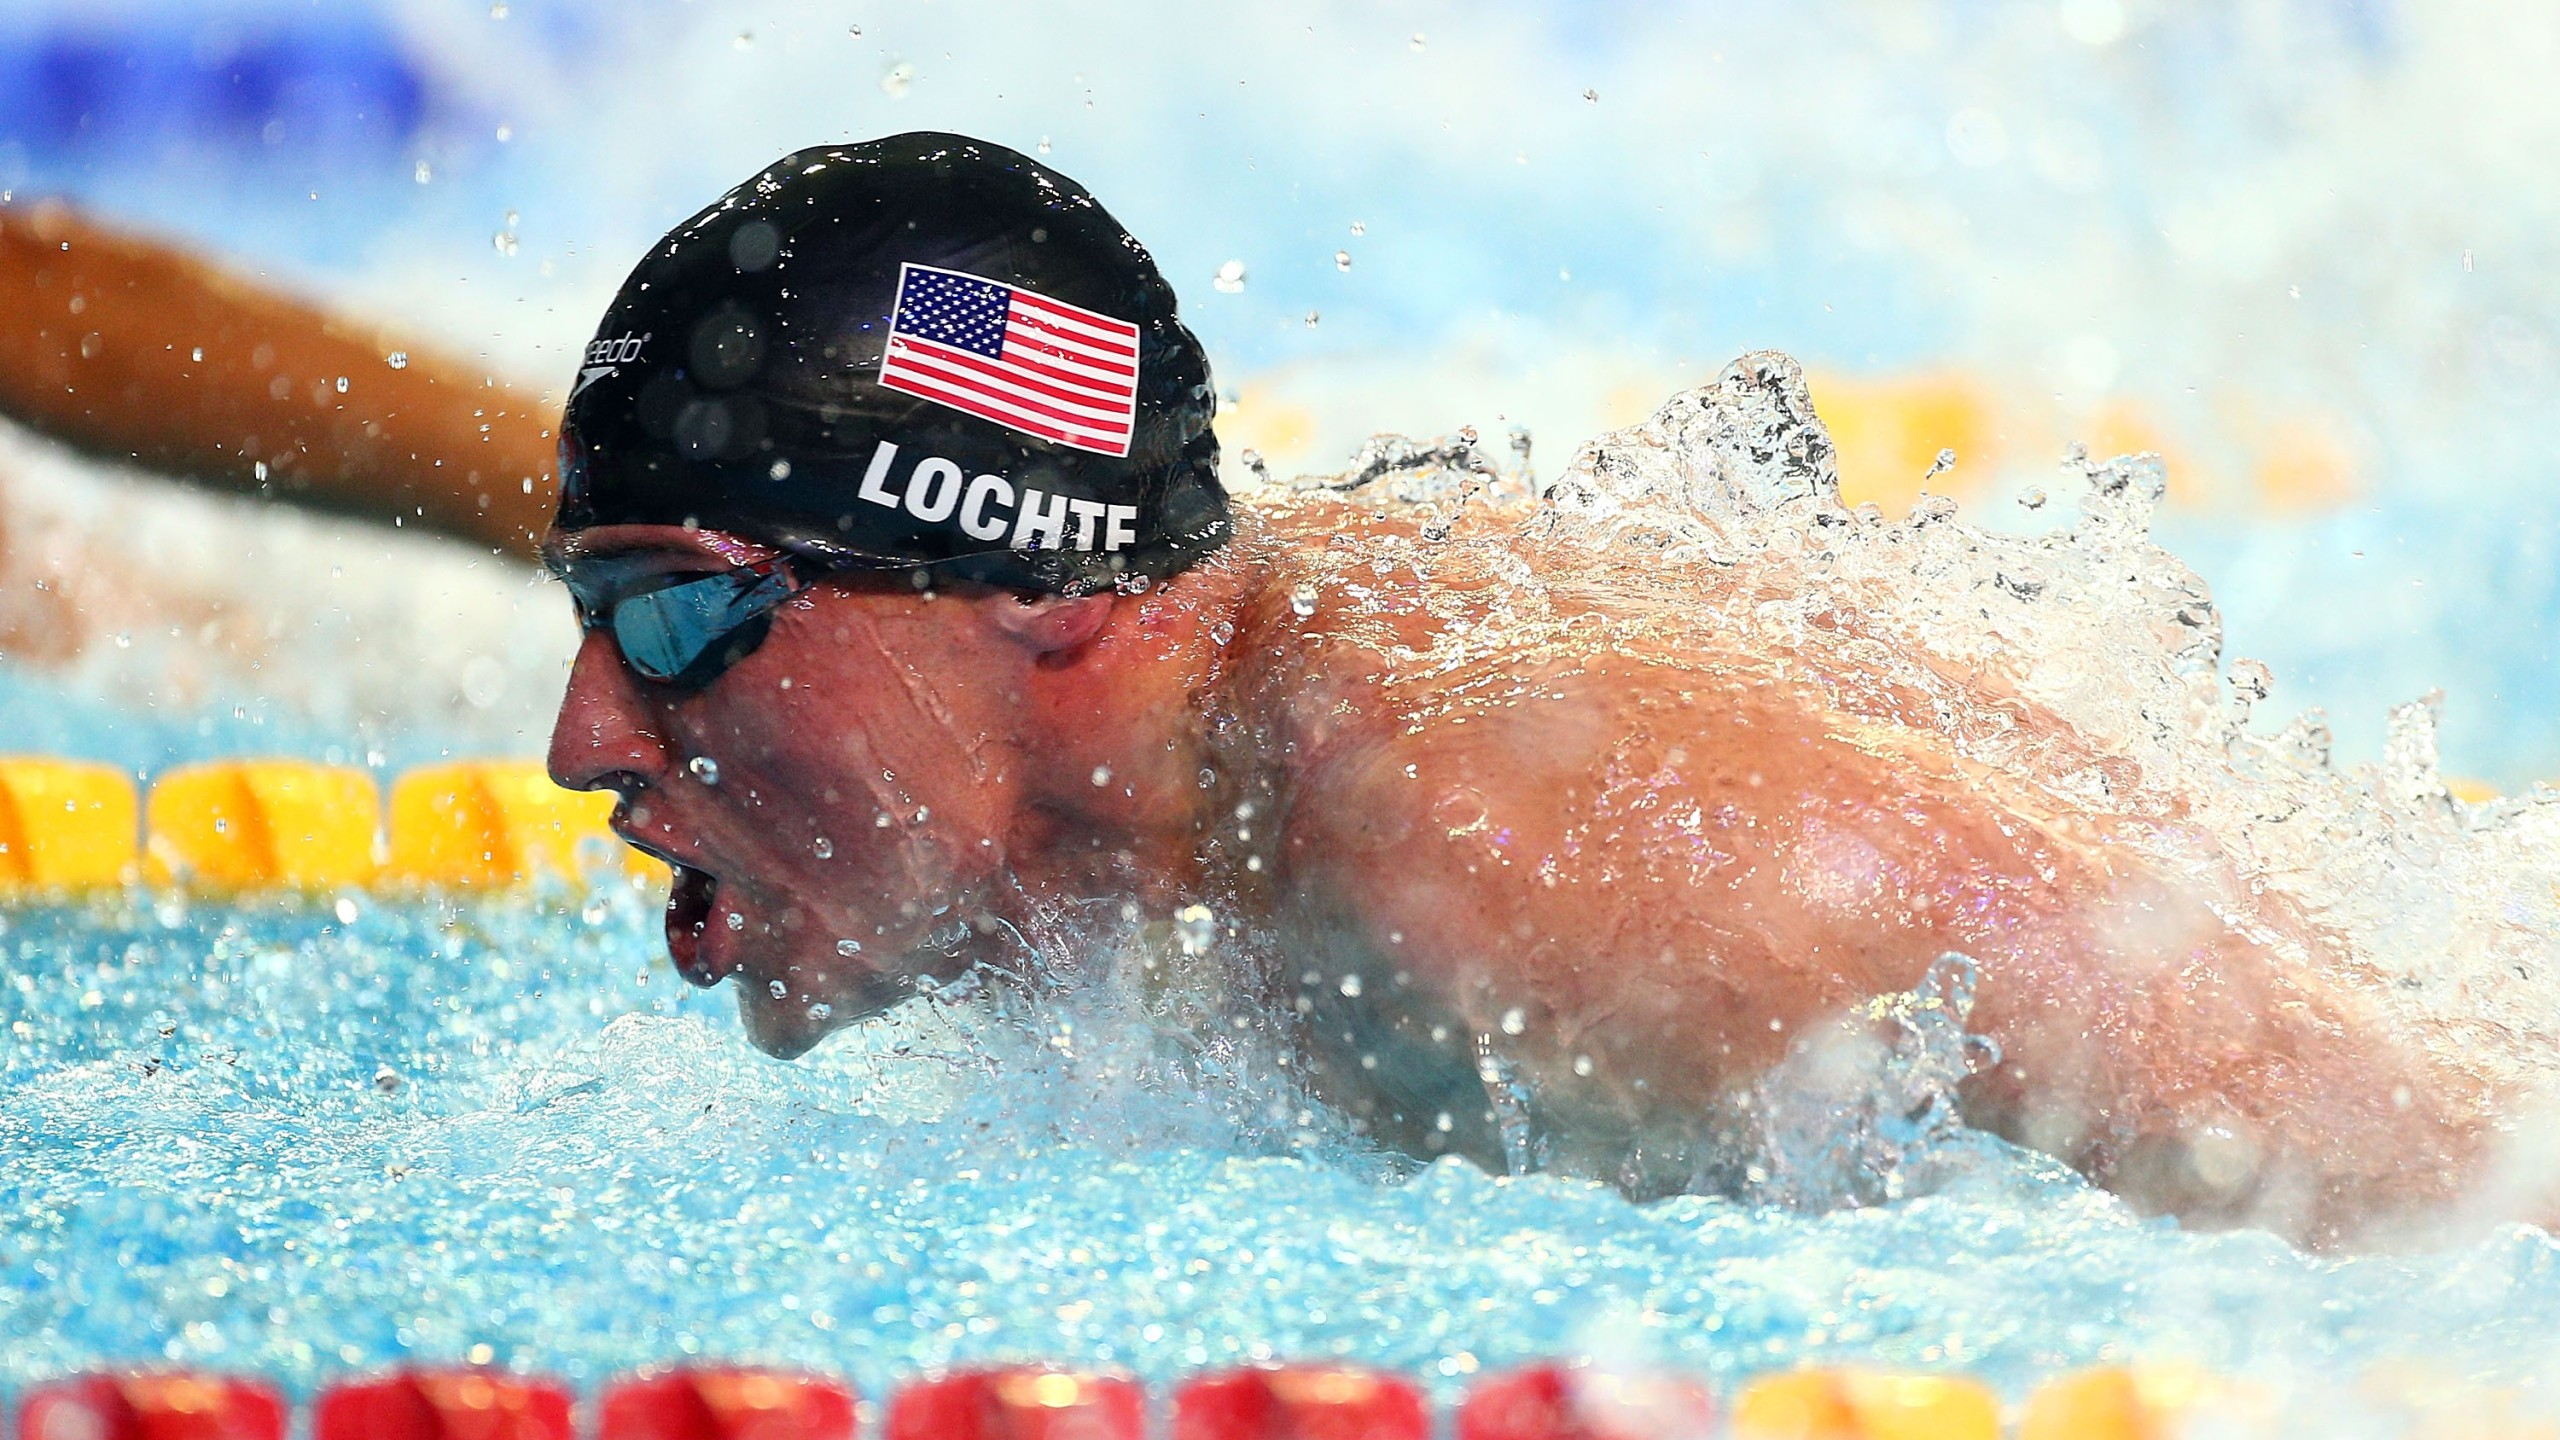 Ryan Lochte competes in the Men's 100m Butterfly semi finals during day one of the 11th FINA Short Course World Championships at the Sinan Erdem Dome on December 12, 2012 in Istanbul, Turkey. (Credit: Clive Rose/Getty Images)